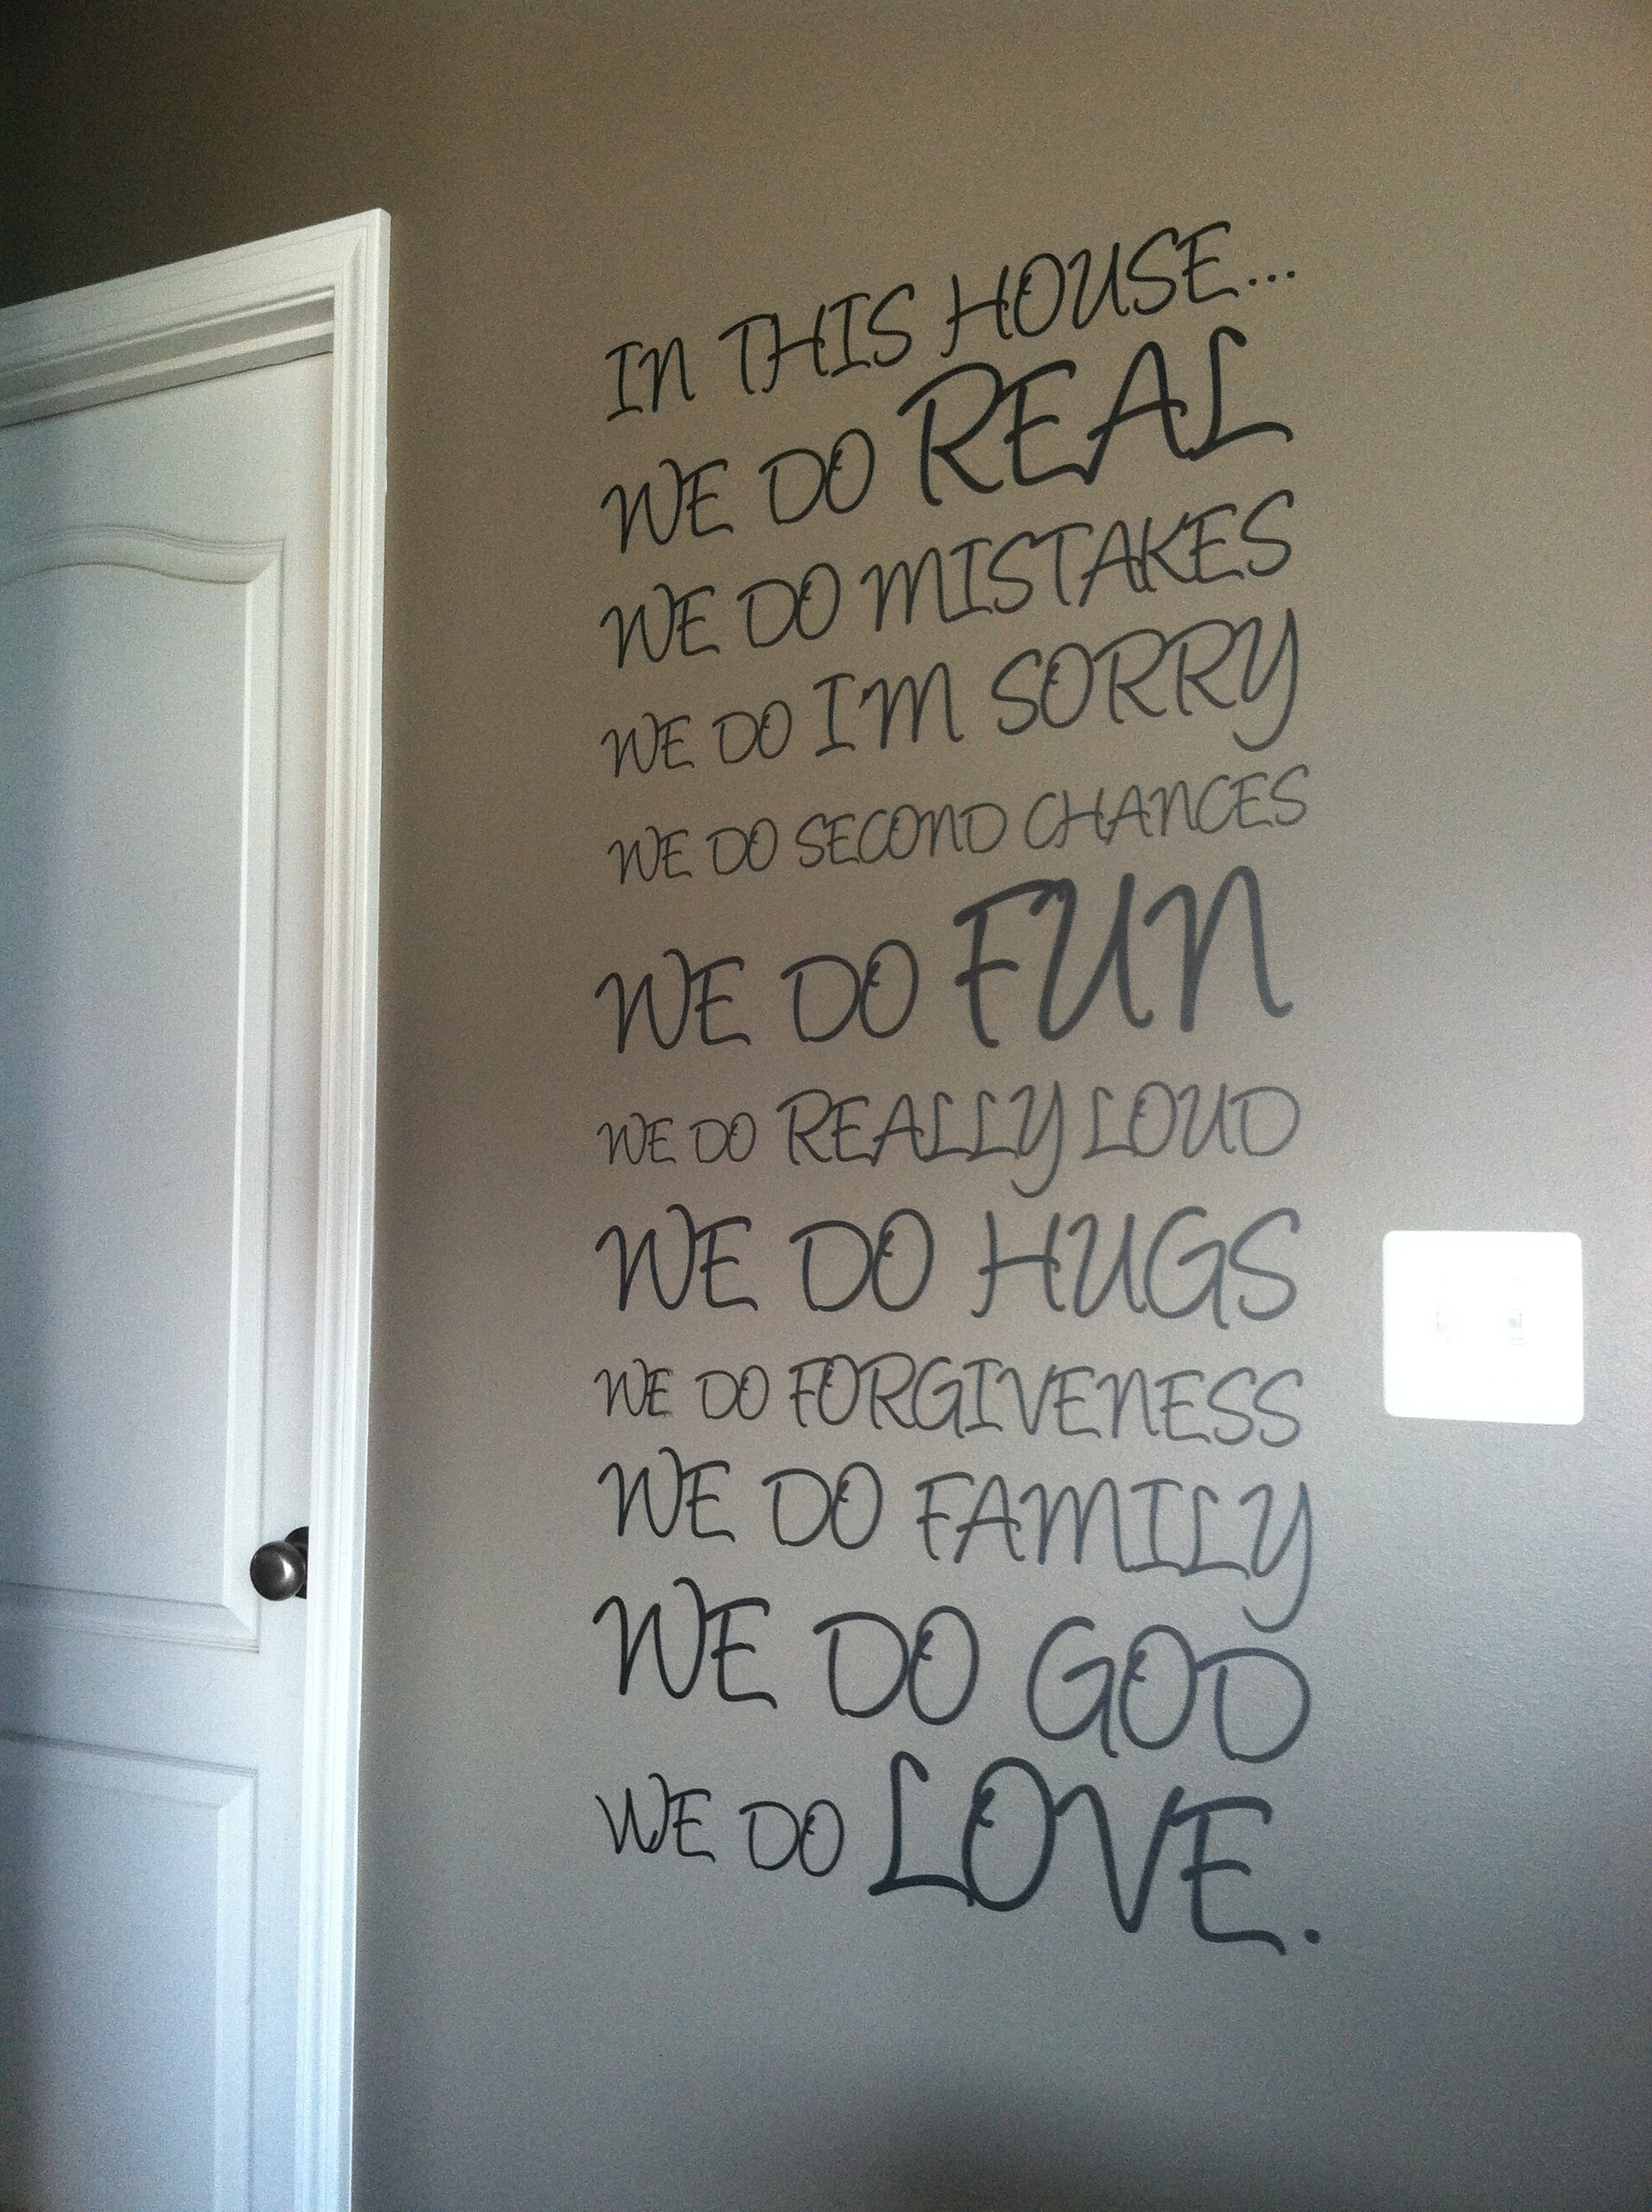 Angelina Font In This House Wall Decal